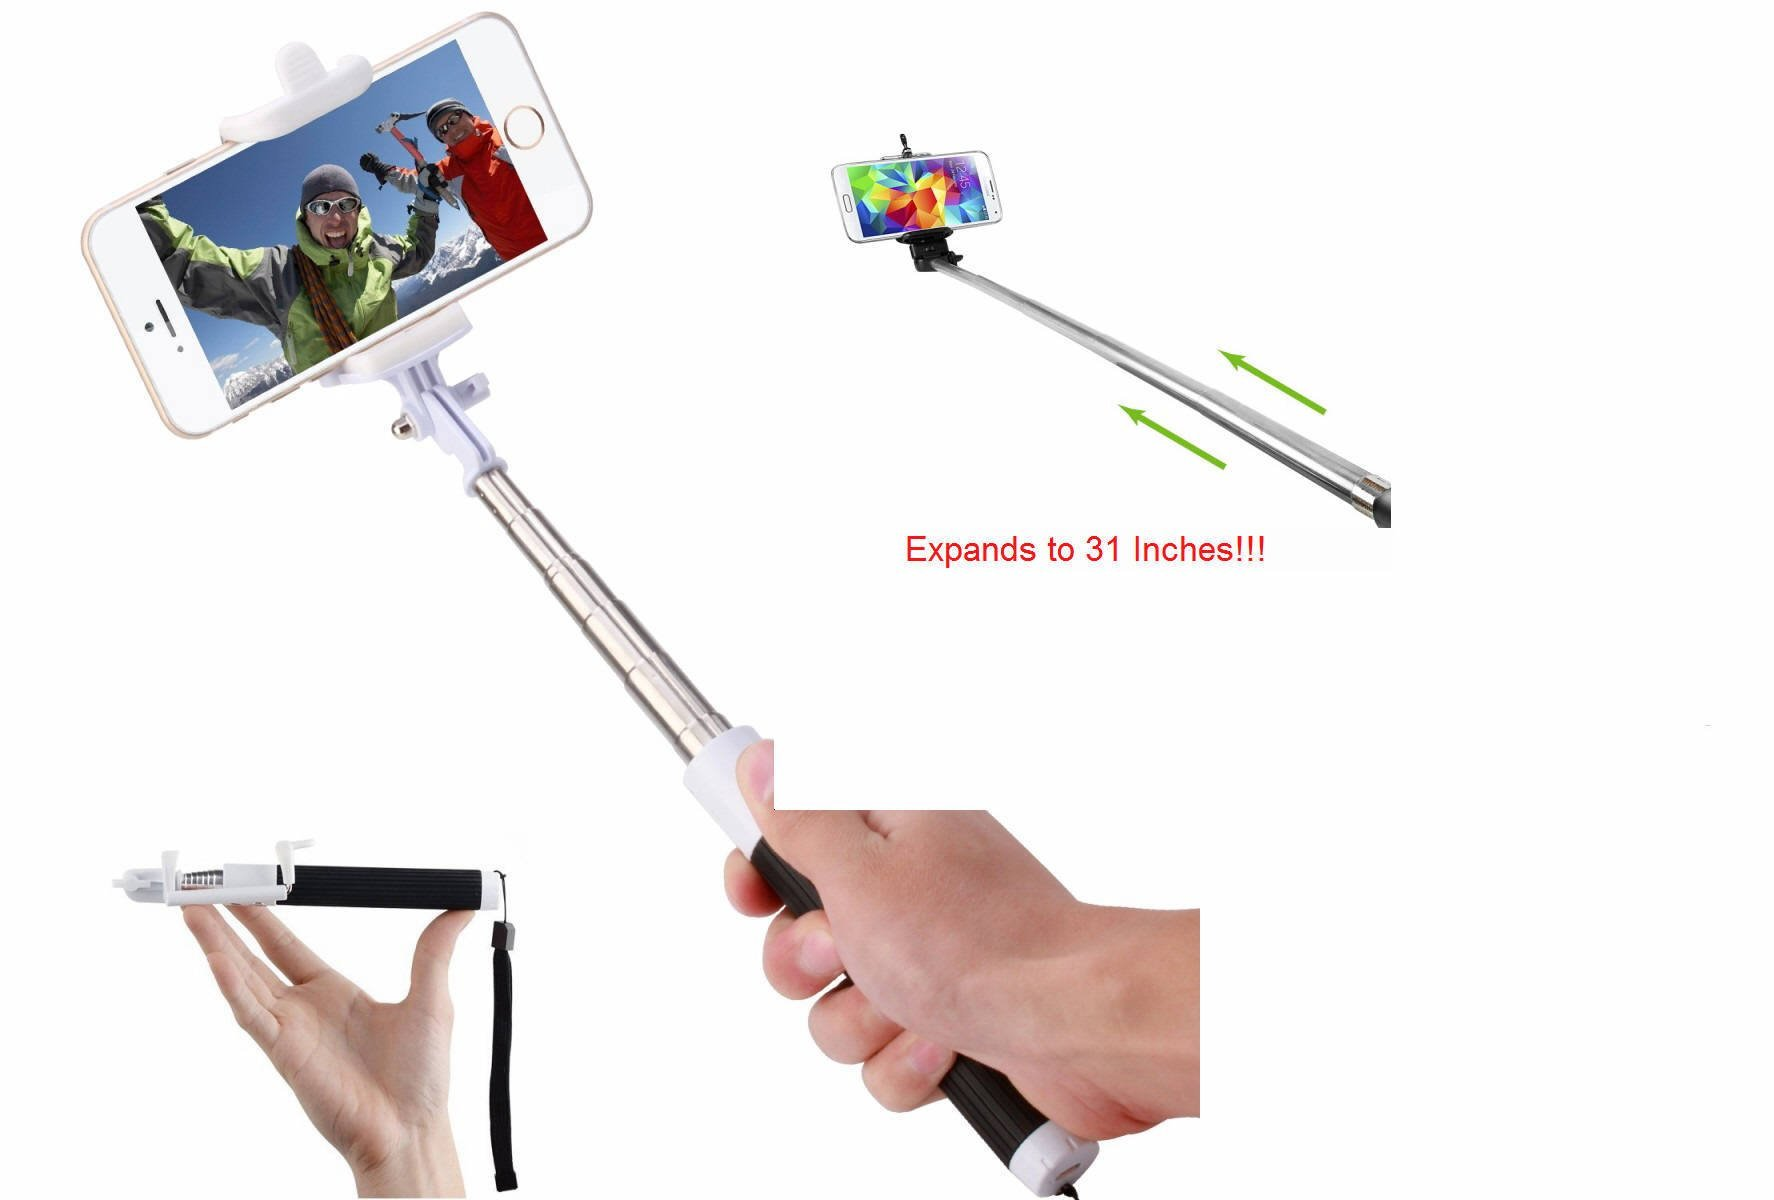 Cell-Stuff Compact Pink Extendable [Bluetooth] Wireless Self Portrait Selfie Stick Stick Handheld Monopod with Shutter Controls Button on Handle Compatible w/Moto G7 Power by Cell-stuff (Image #3)